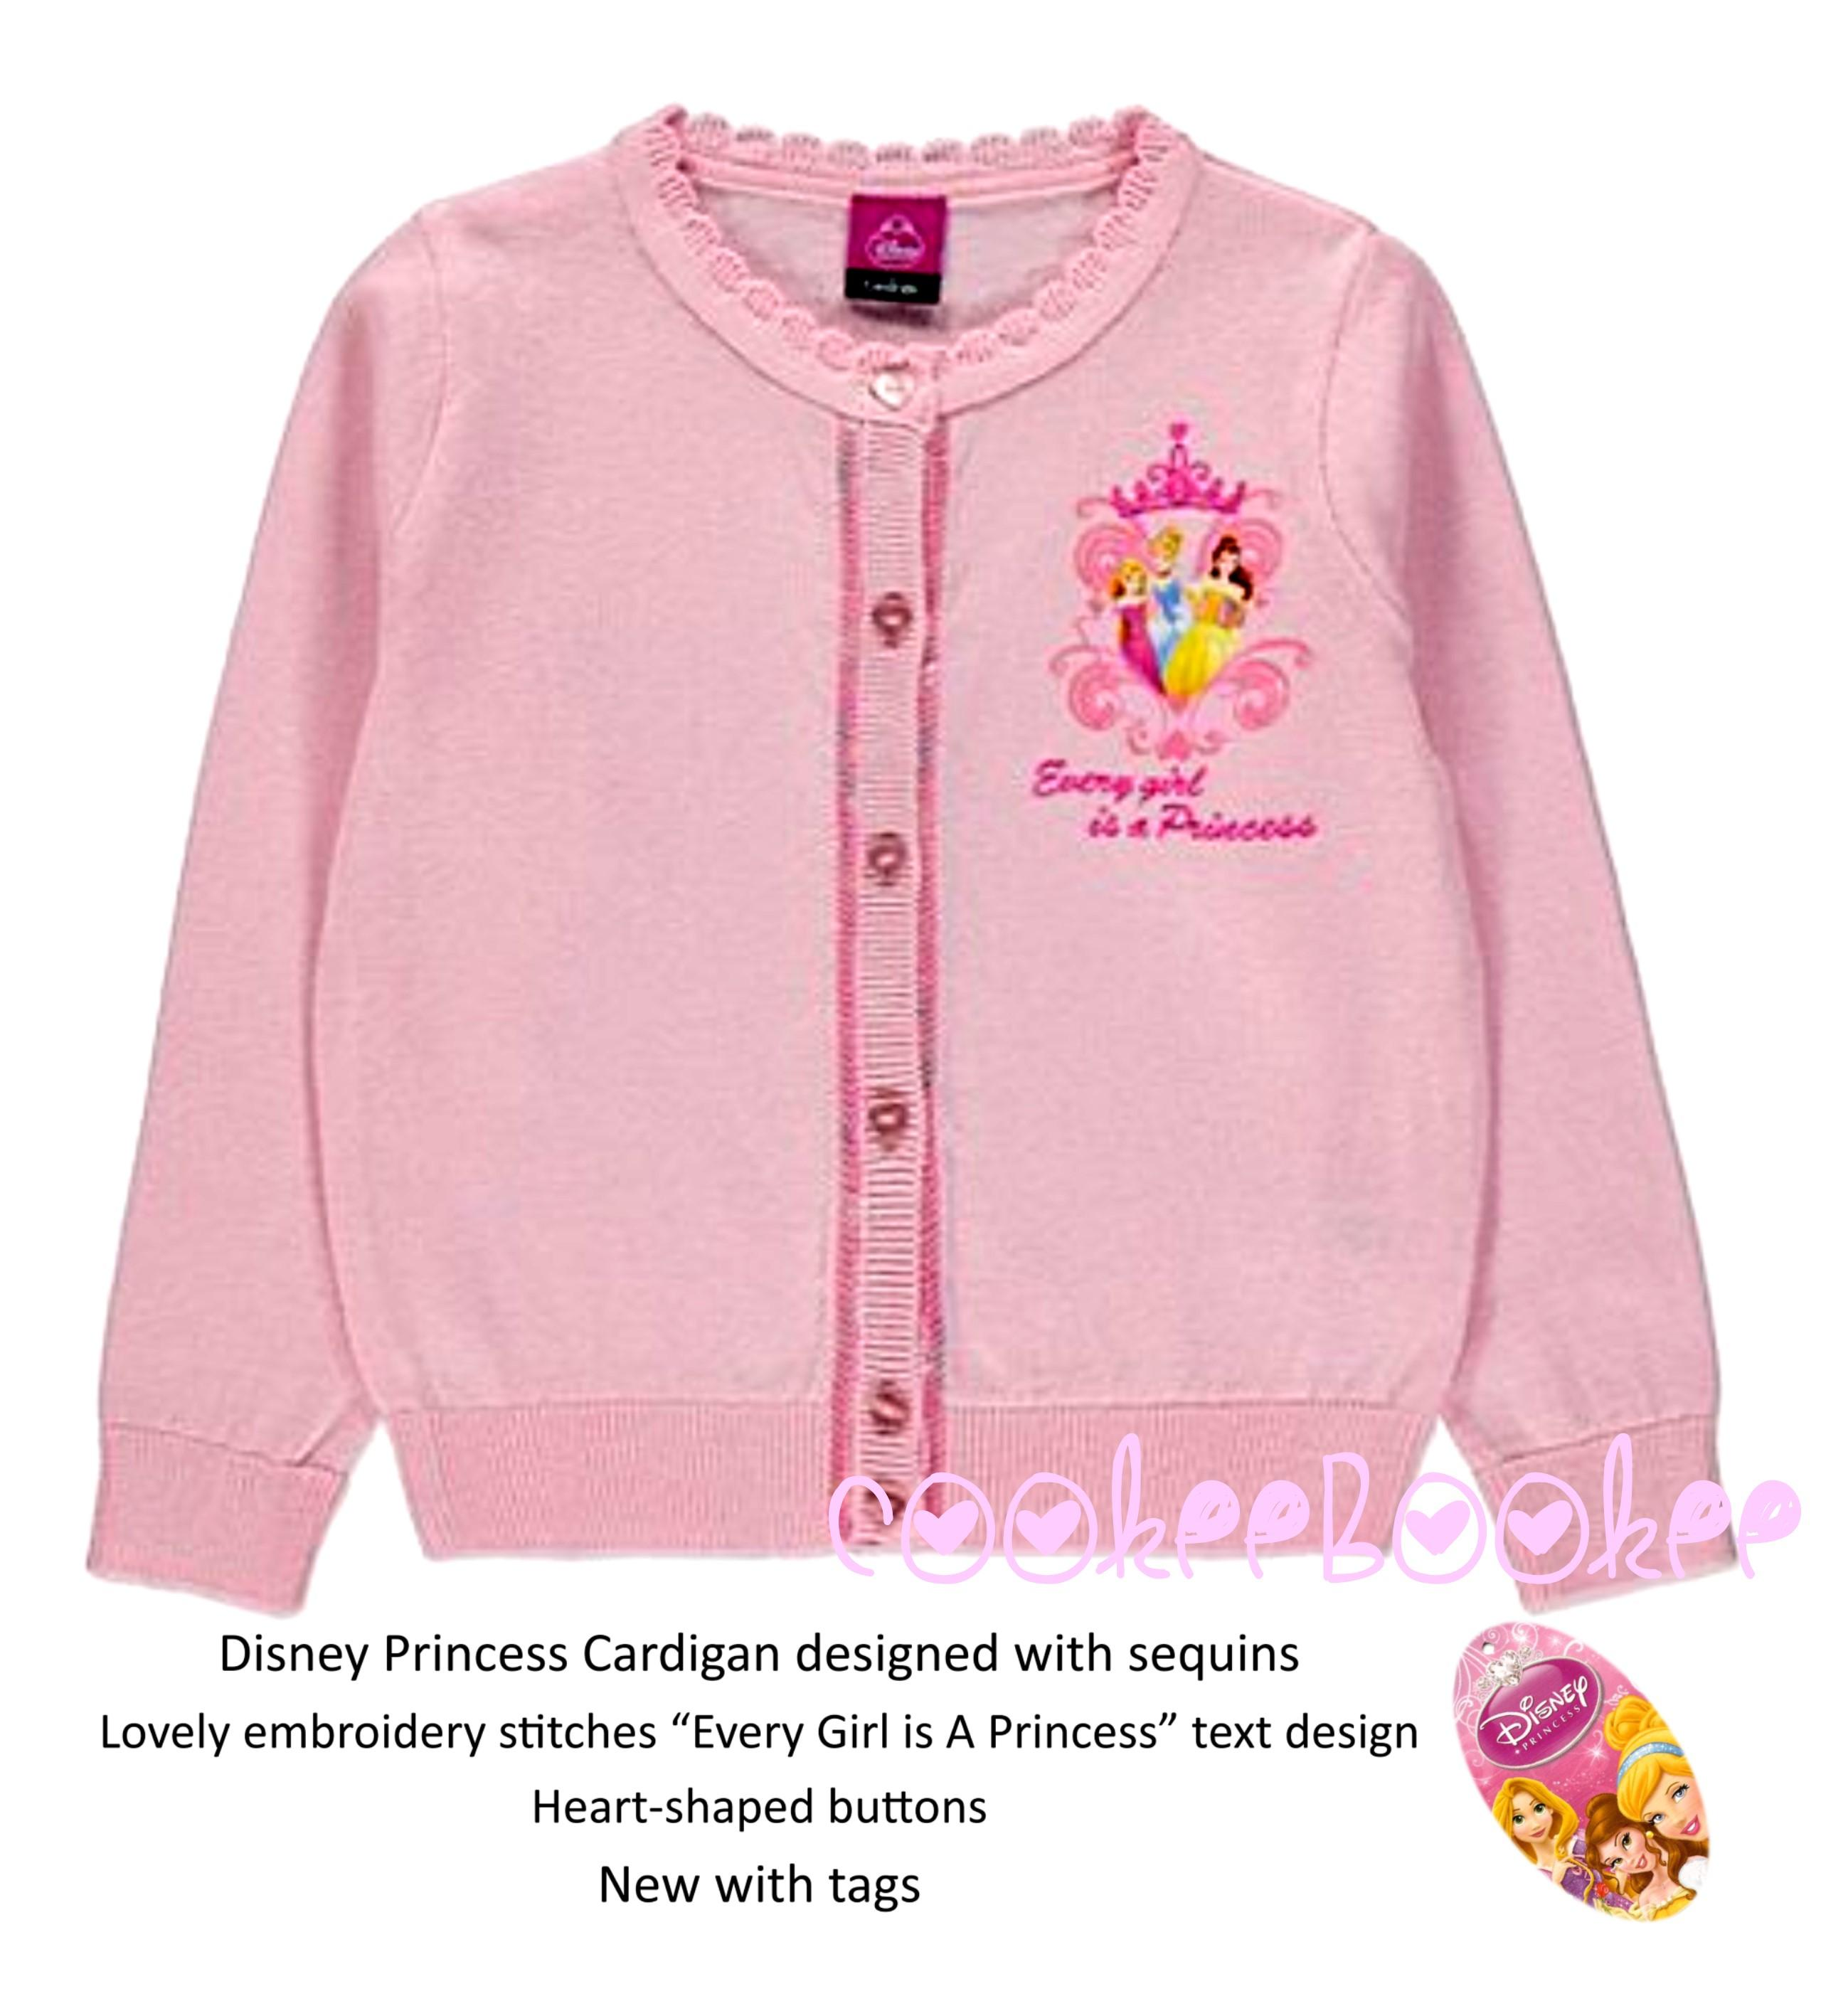 *DISNEY PRINCESS 'Every Girl is a Princess' PINK LIGHT SOFT CARDIGAN /  SWEATER * Heart-shaped buttons * Baby girls UK size 3-4 years *  Quality-made,